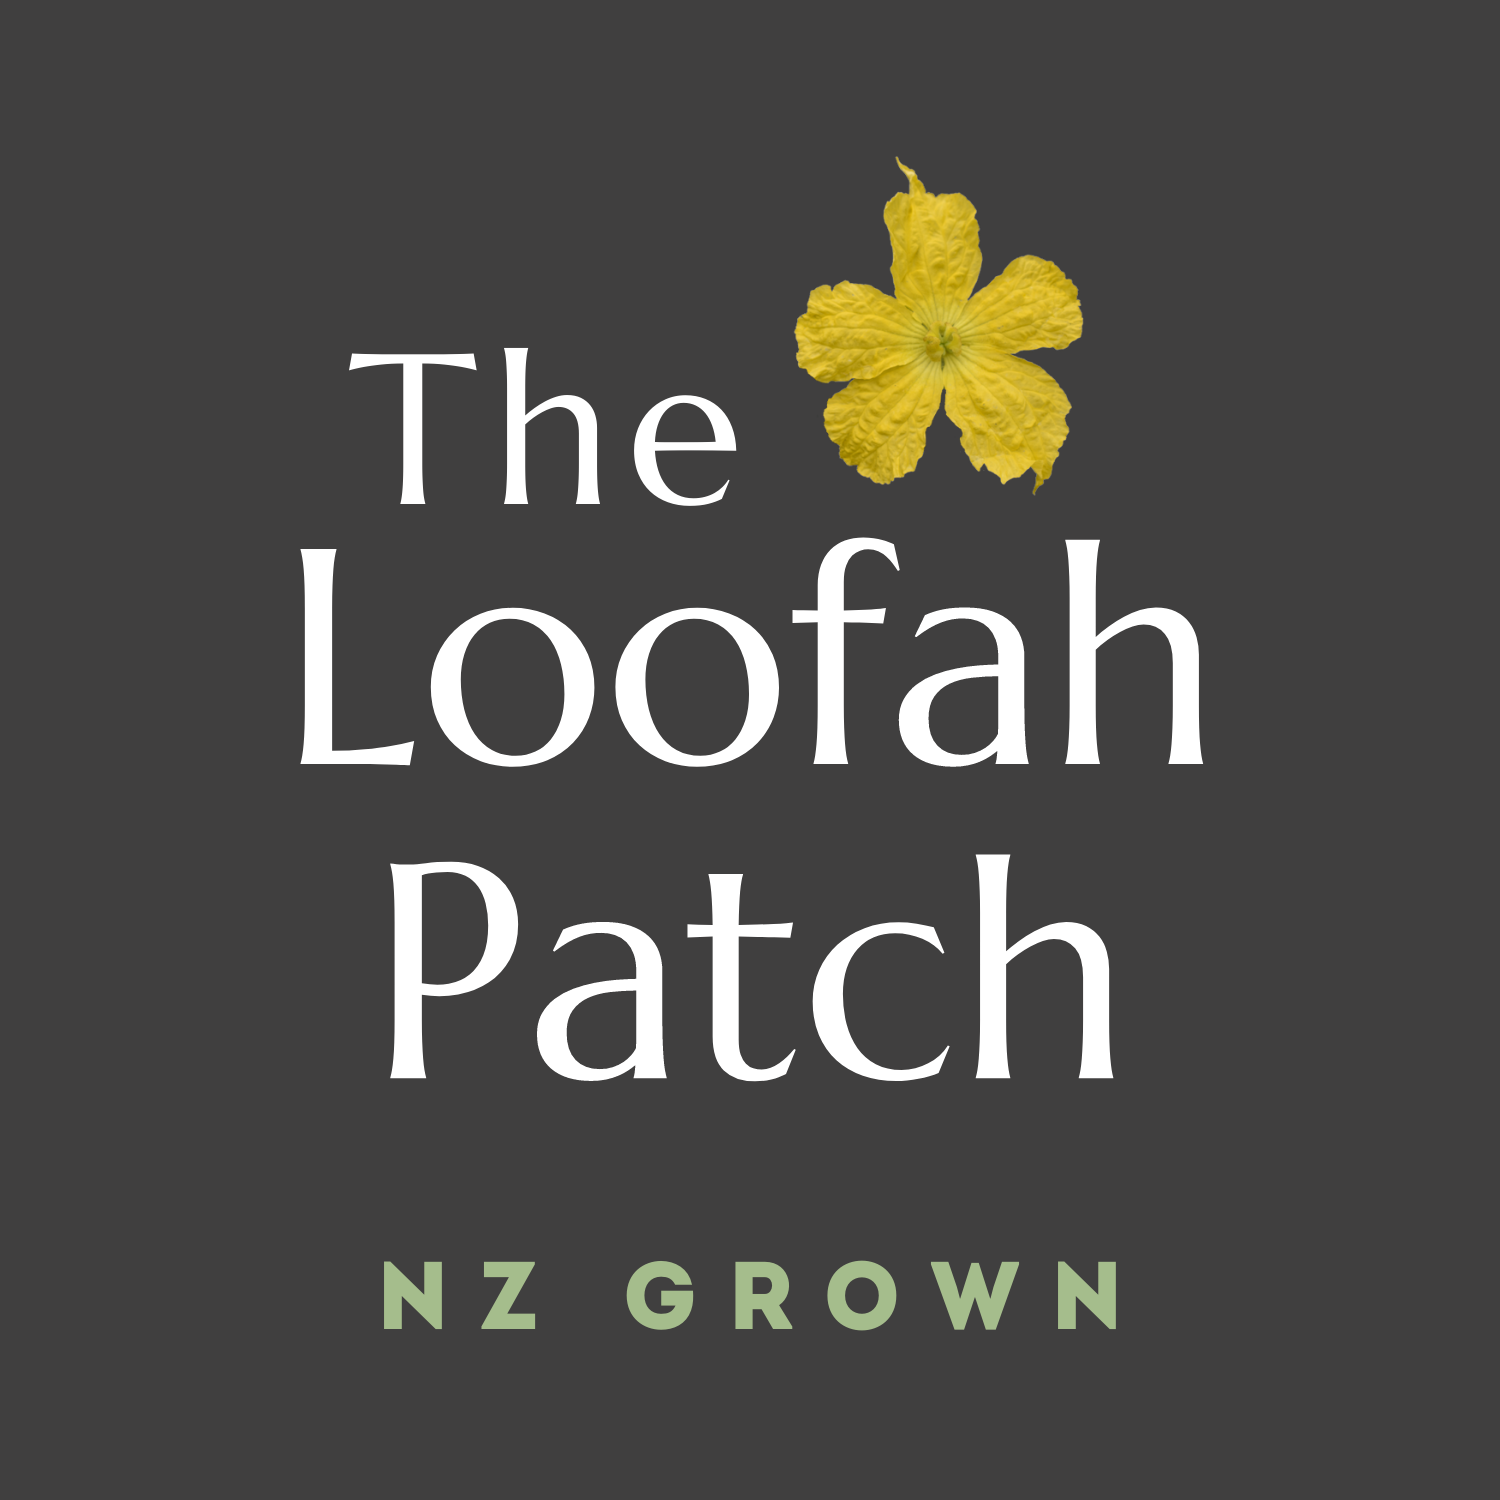 The Loofah Patch